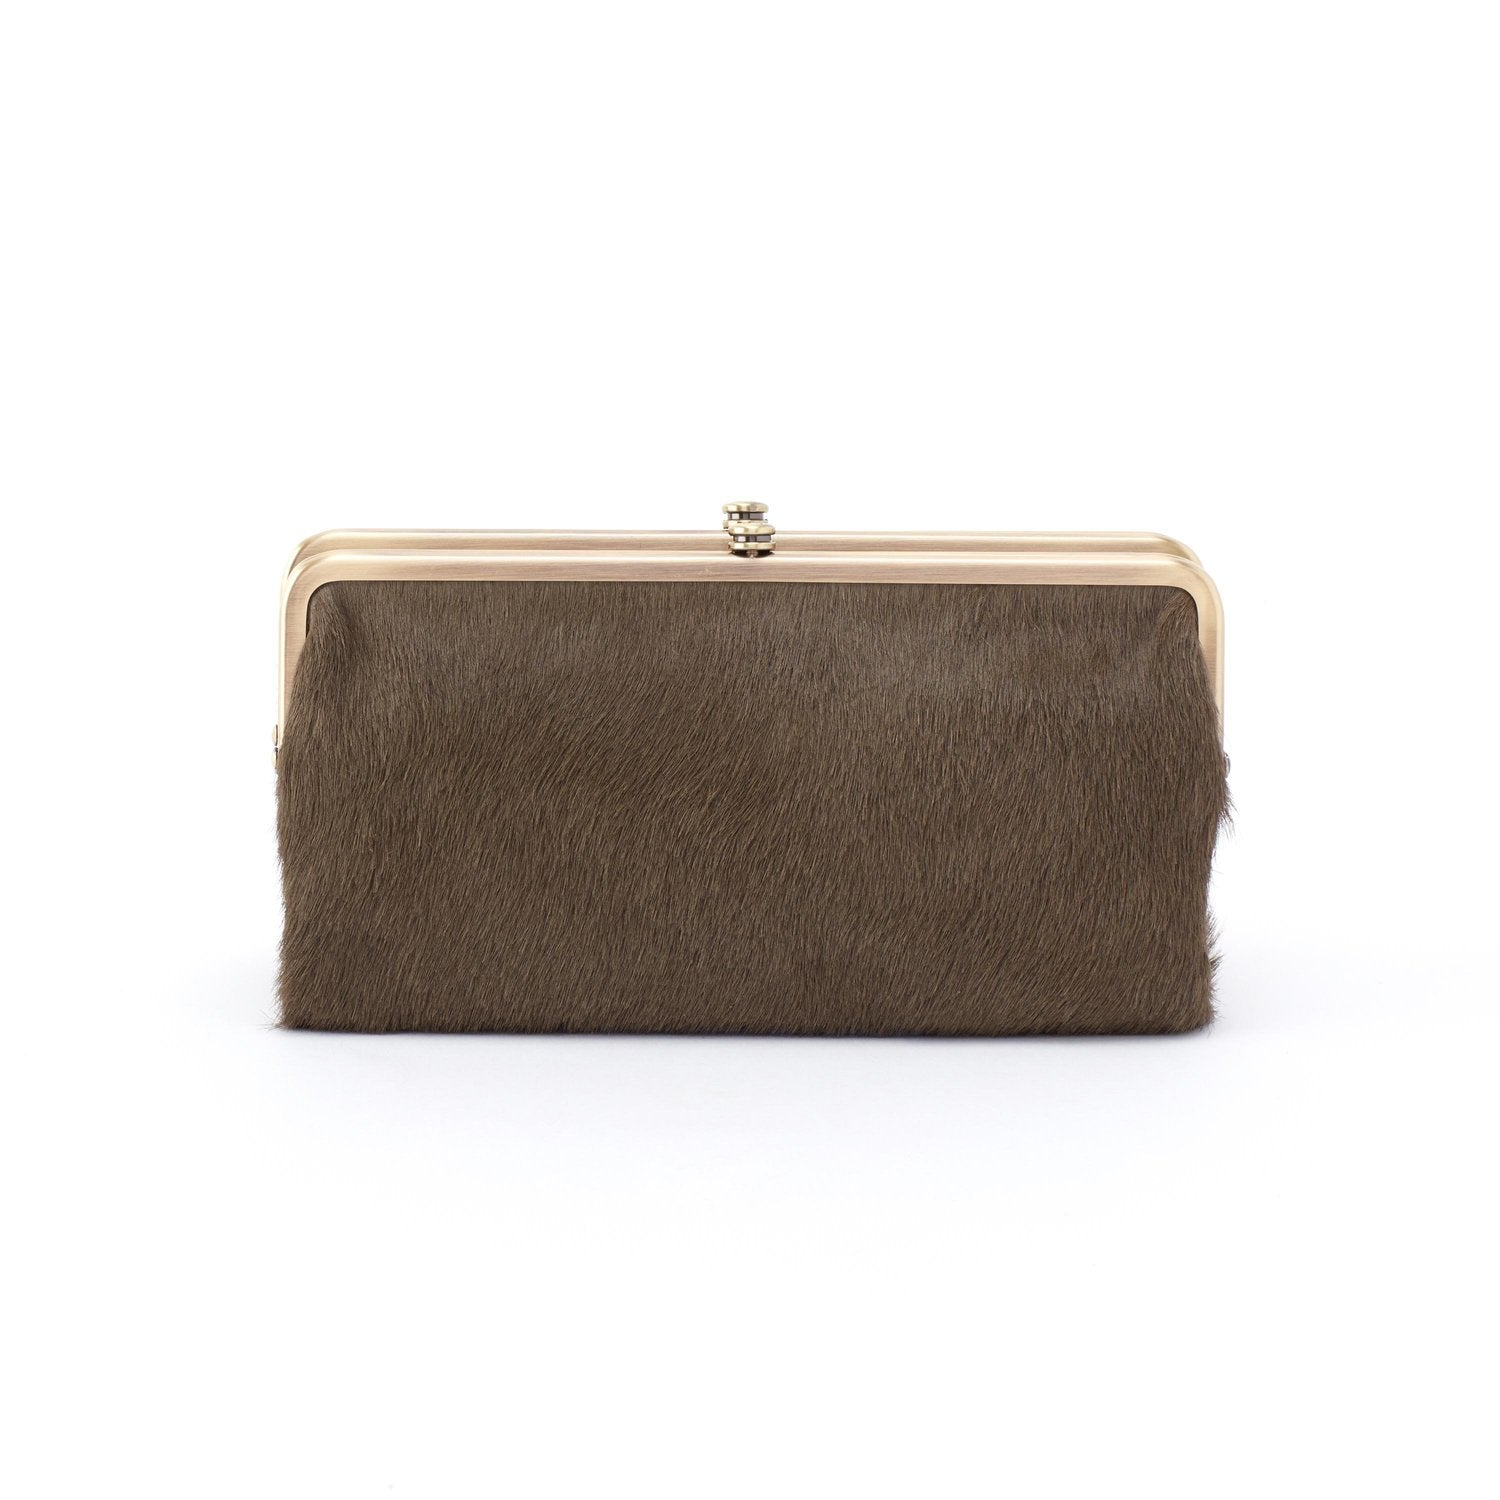 HOBO Bags Lauren Clutch Wallet HR-3385